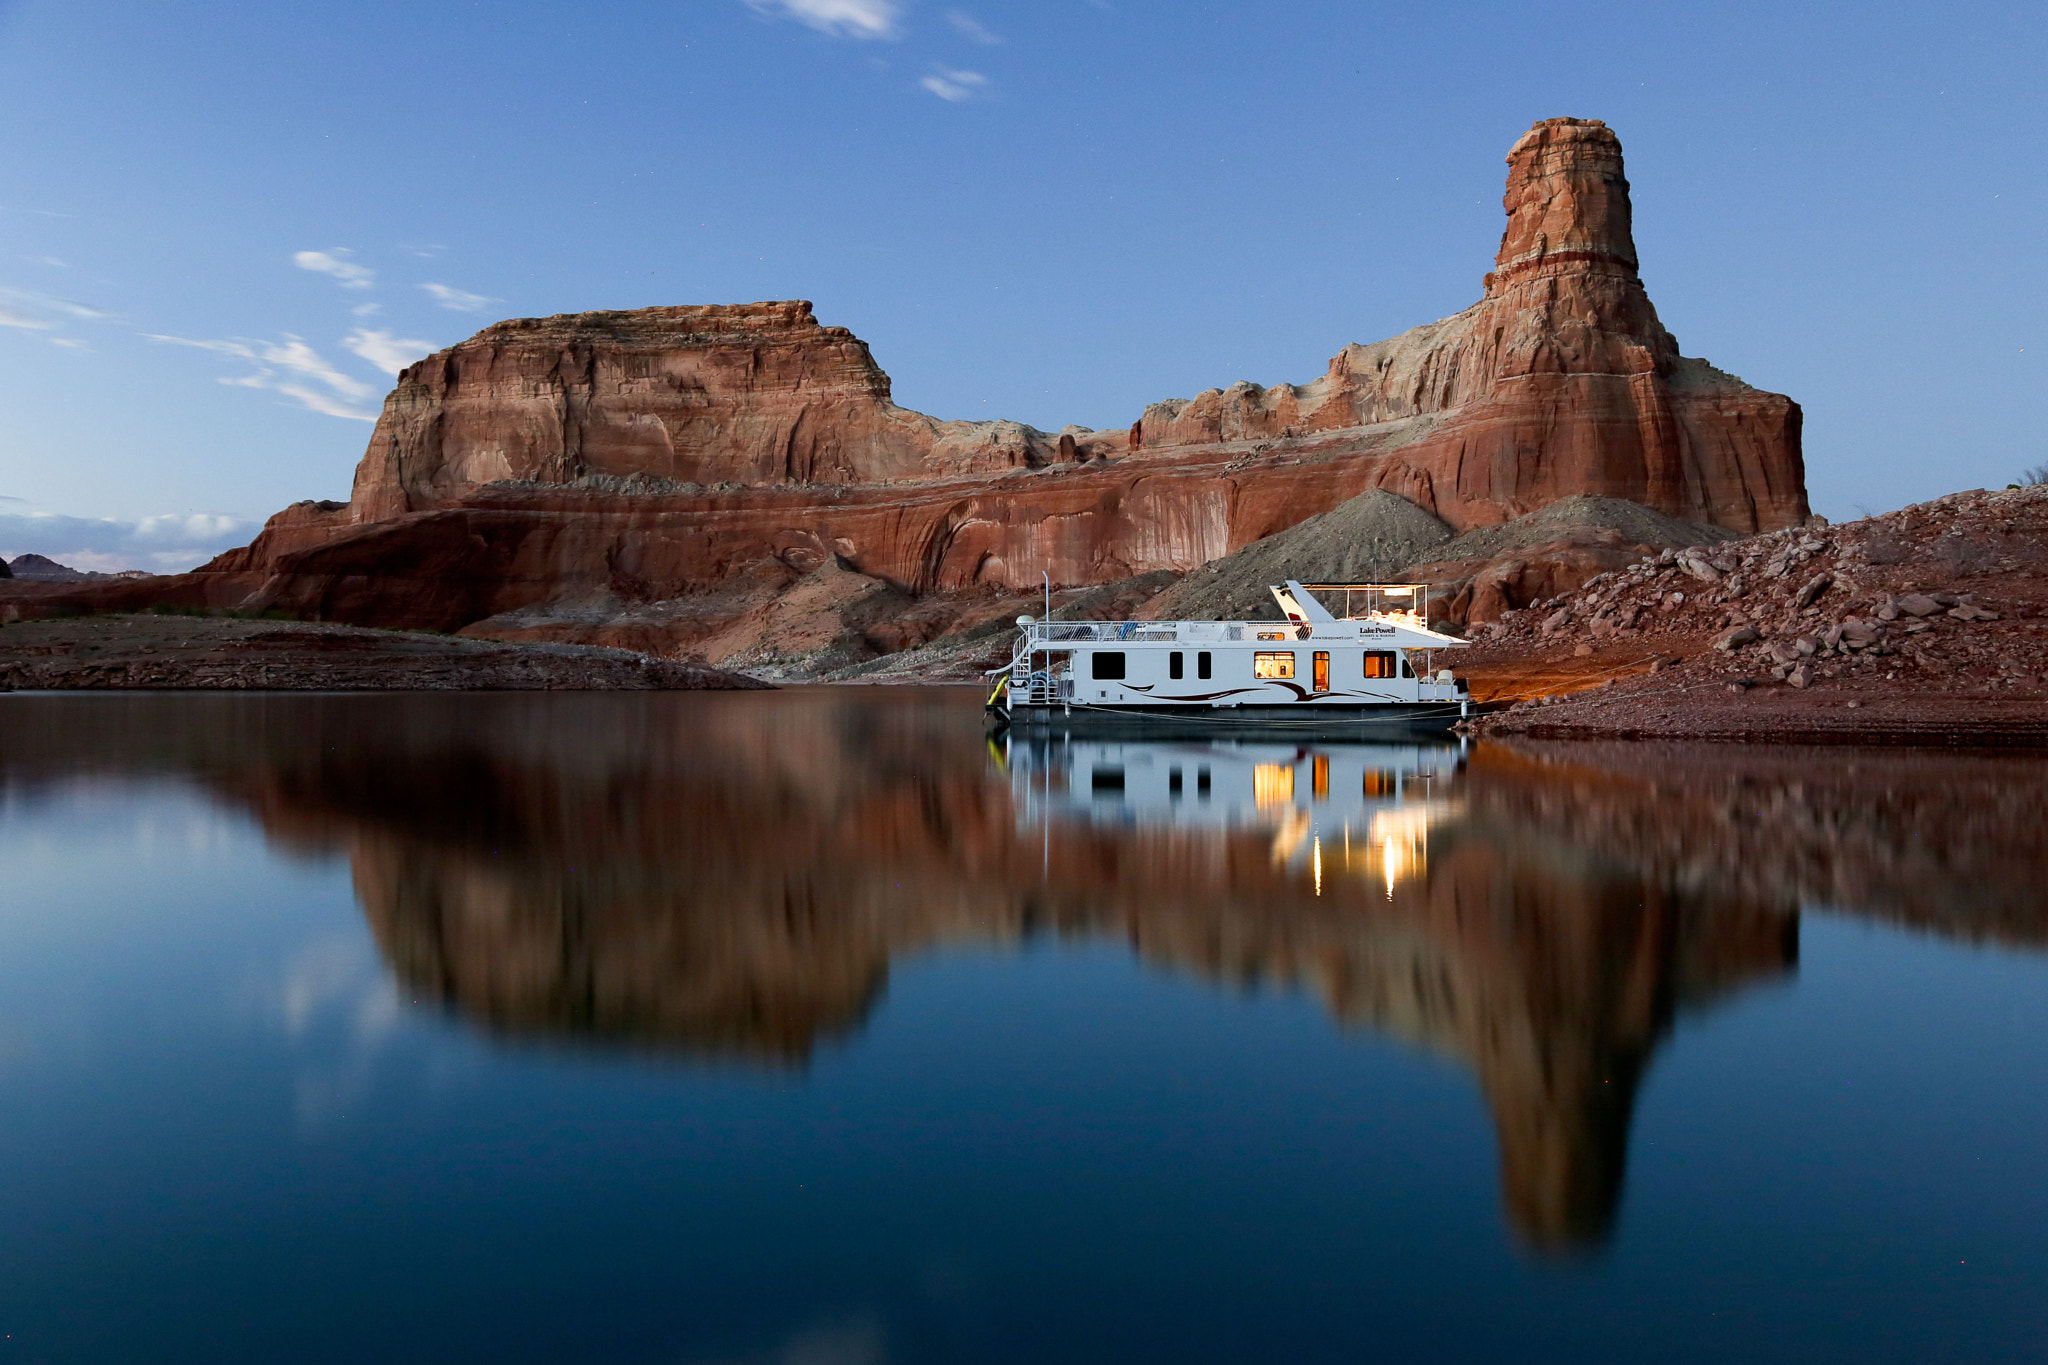 Photograph Lake Powell by Ritu Vincent on 500px